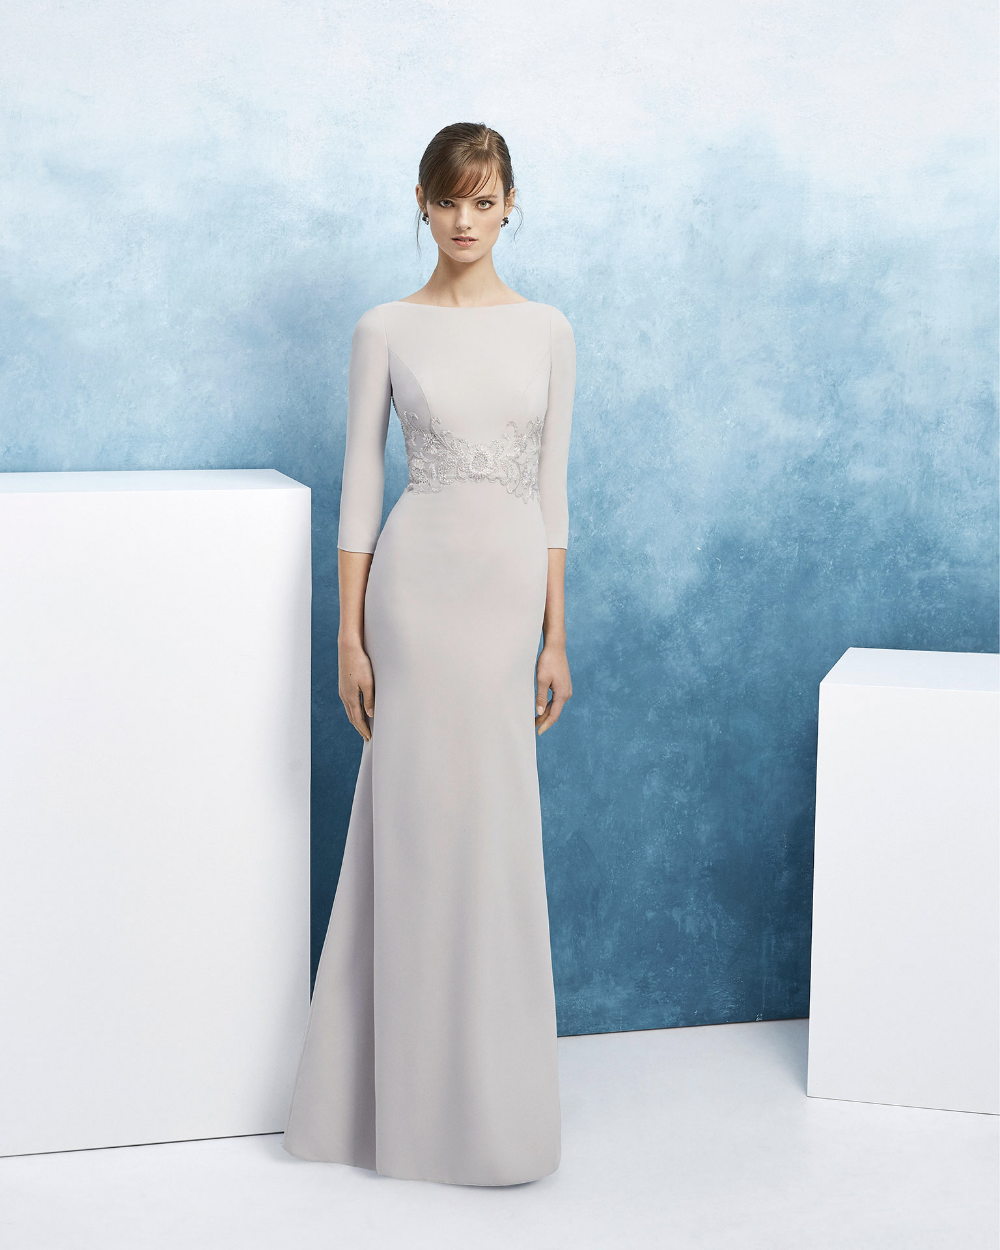 3u147 By Aire Barcelona Cocktail Special Occasions Mob Mog Vera S Bridal Wedding Dresses Petite Wedding Dress Cocktail Dress Lace Beaded Cocktail Dress,Casual Wedding Dresses For Courthouse